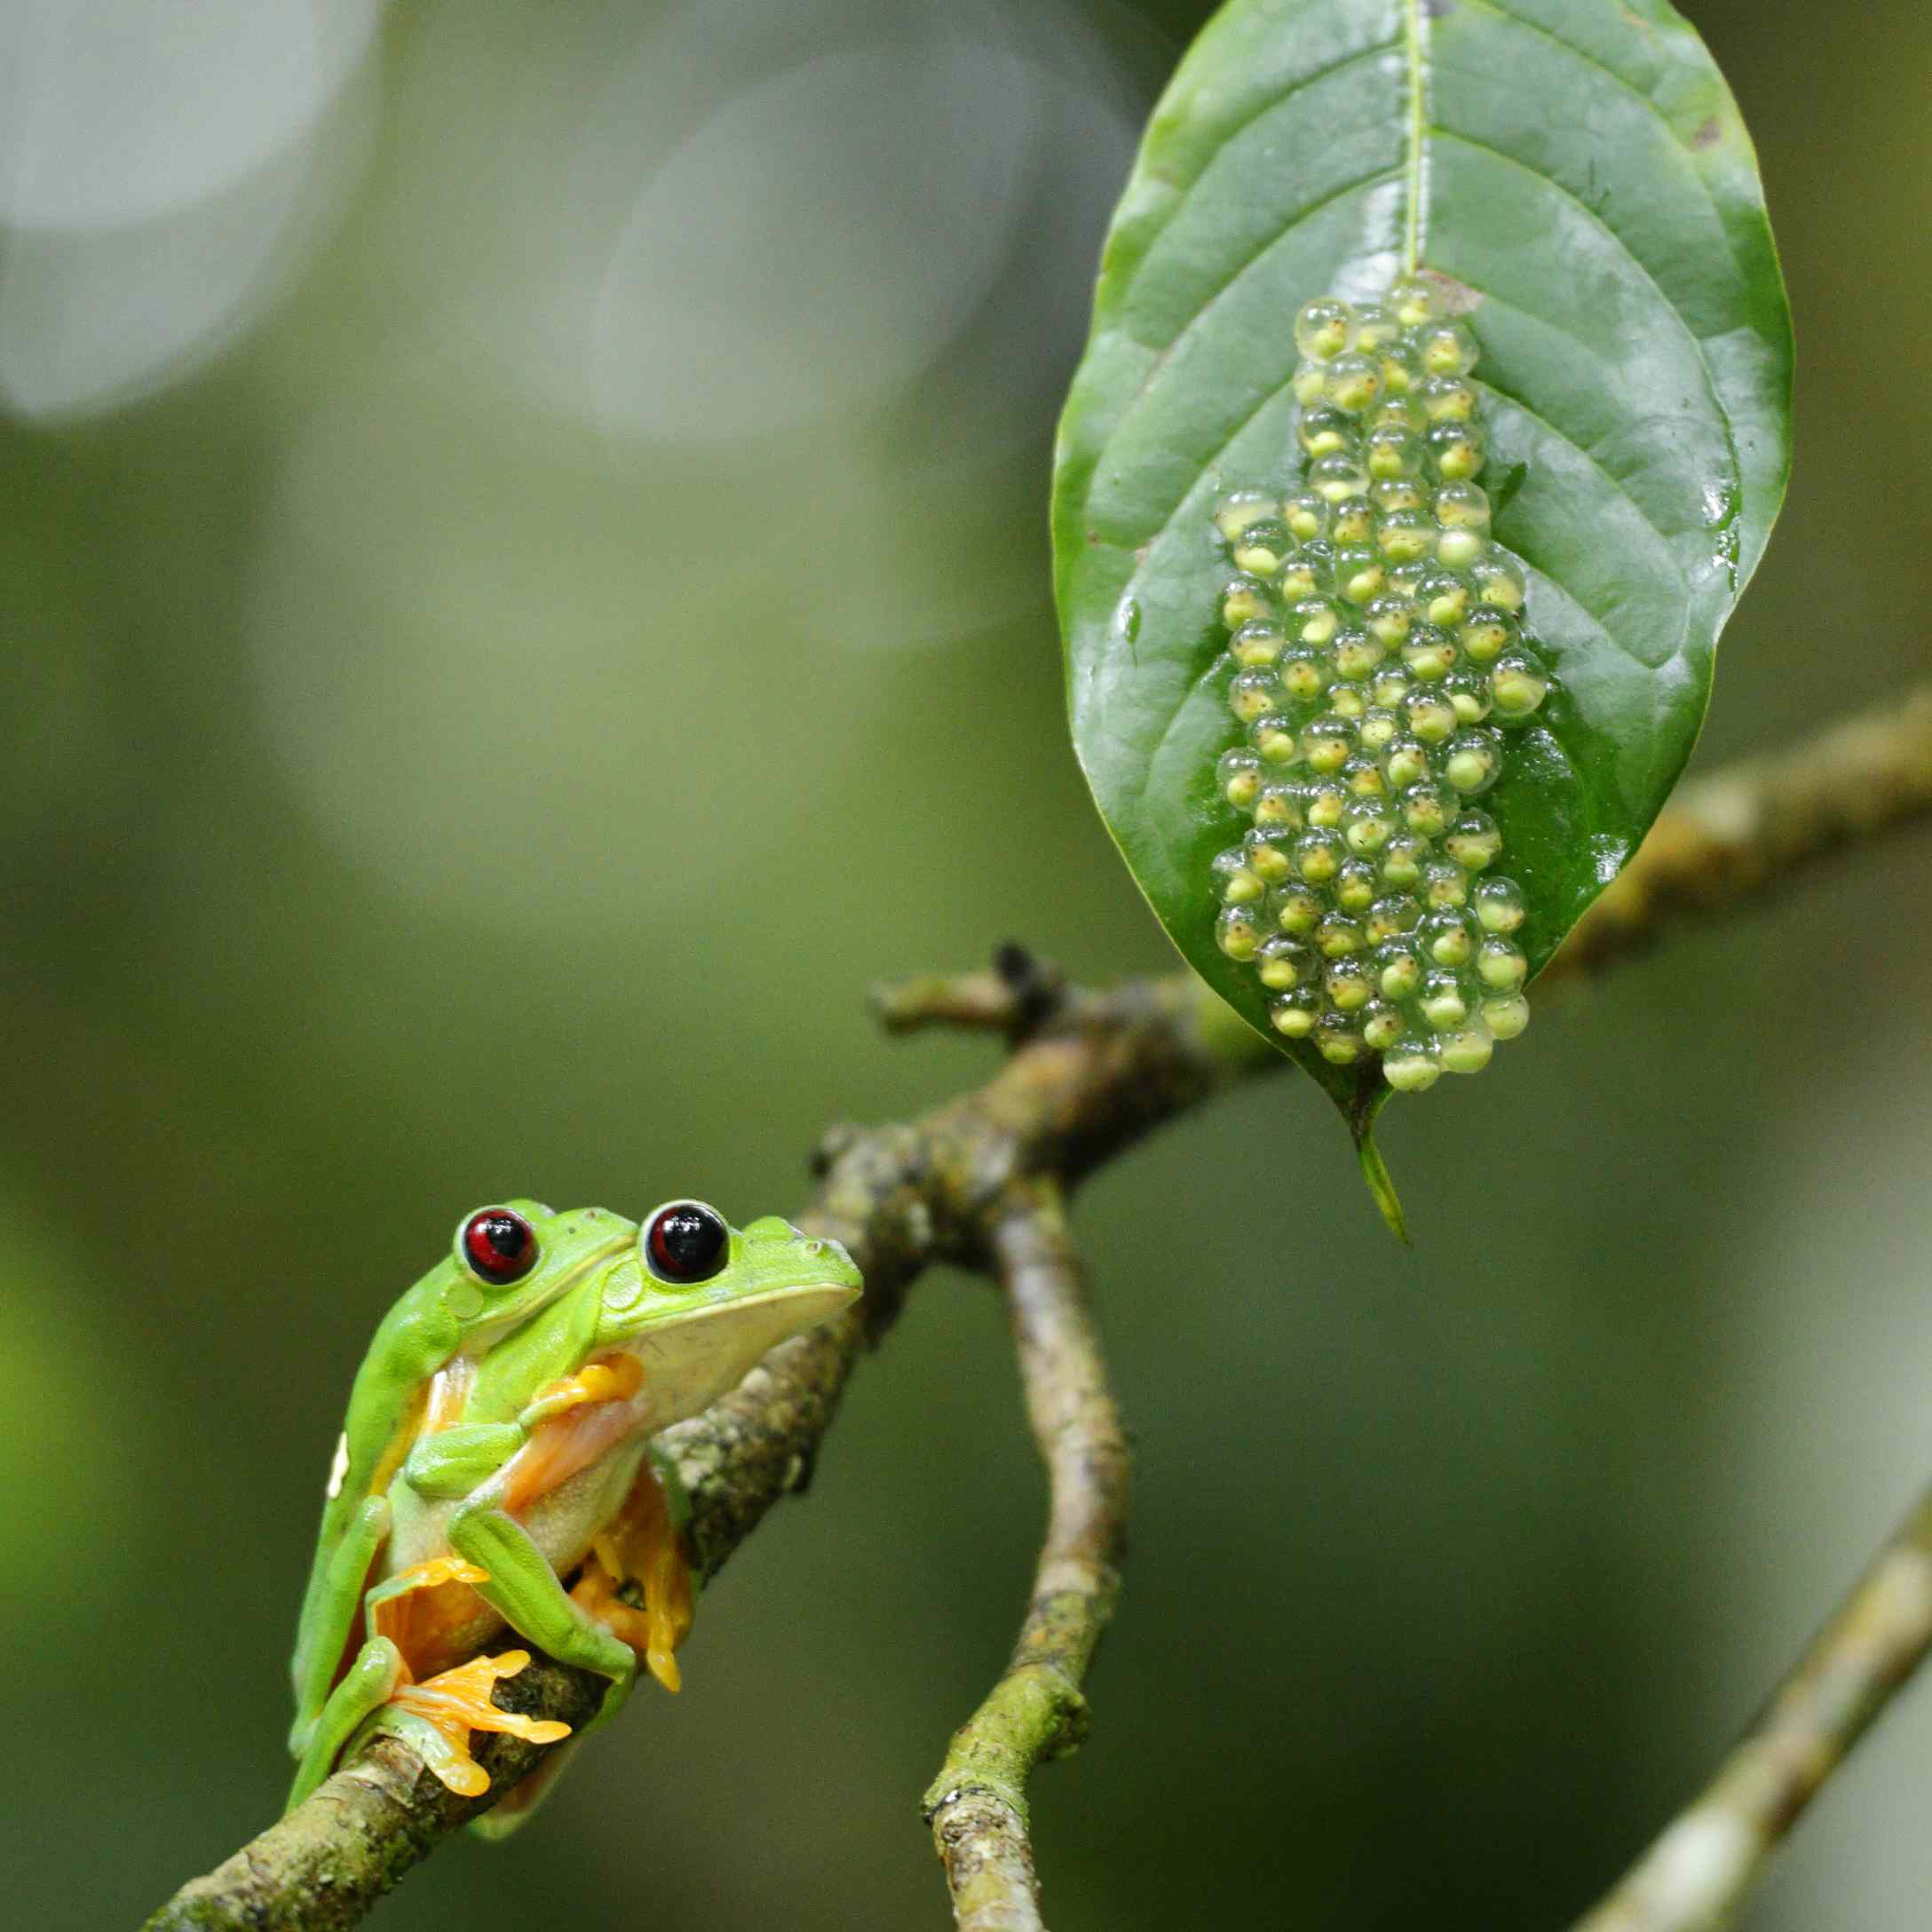 Tree frogs lay their eggs on leaves over water. The tadpoles fall into the water when they hatch.